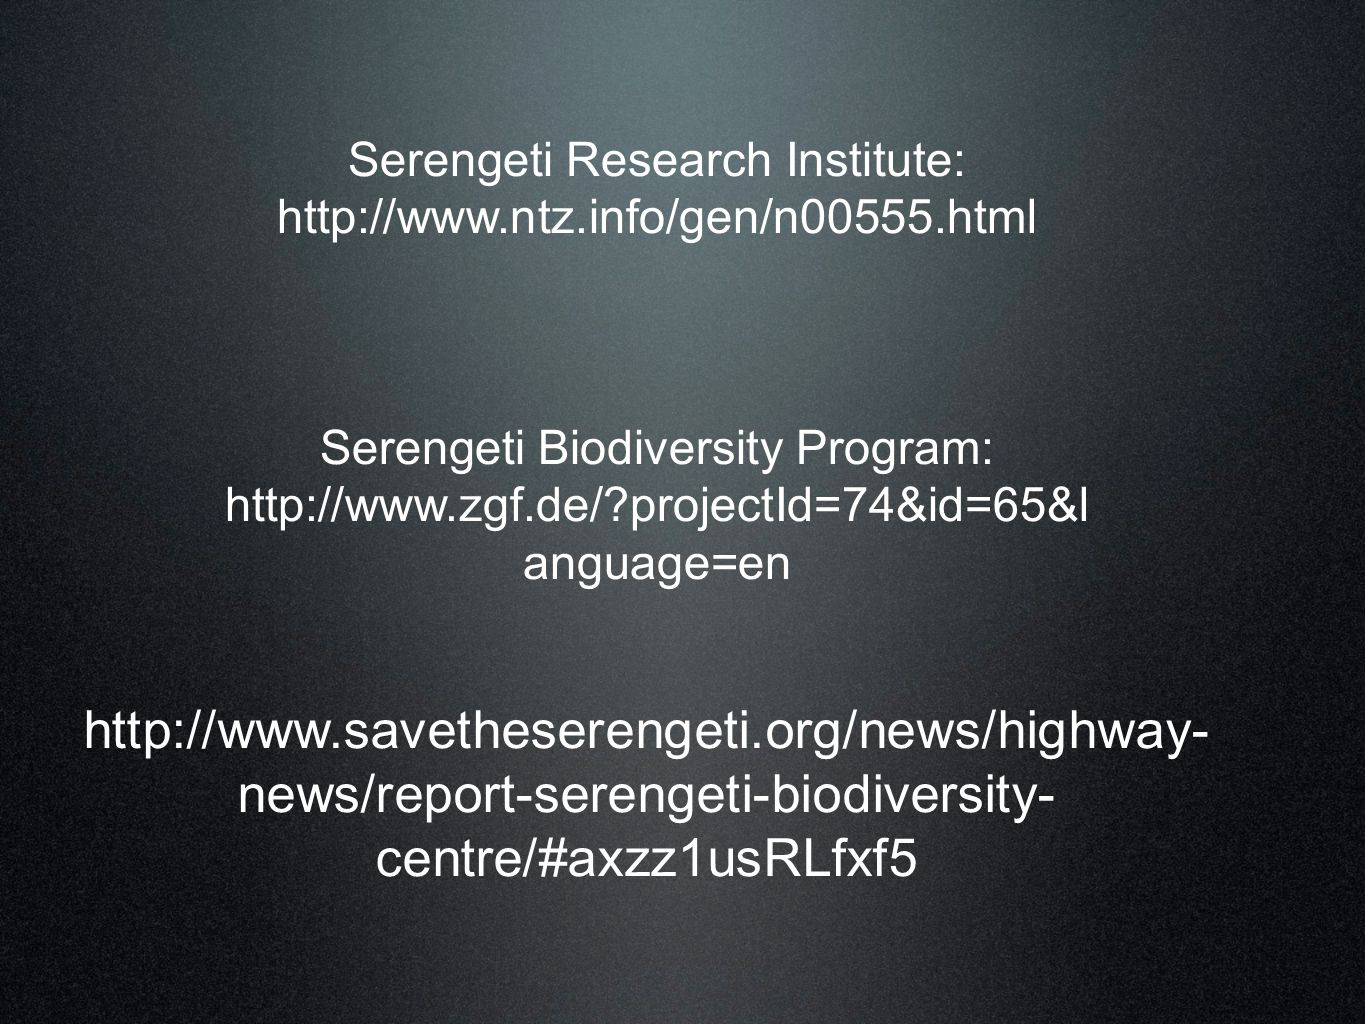 Serengeti Research Institute: